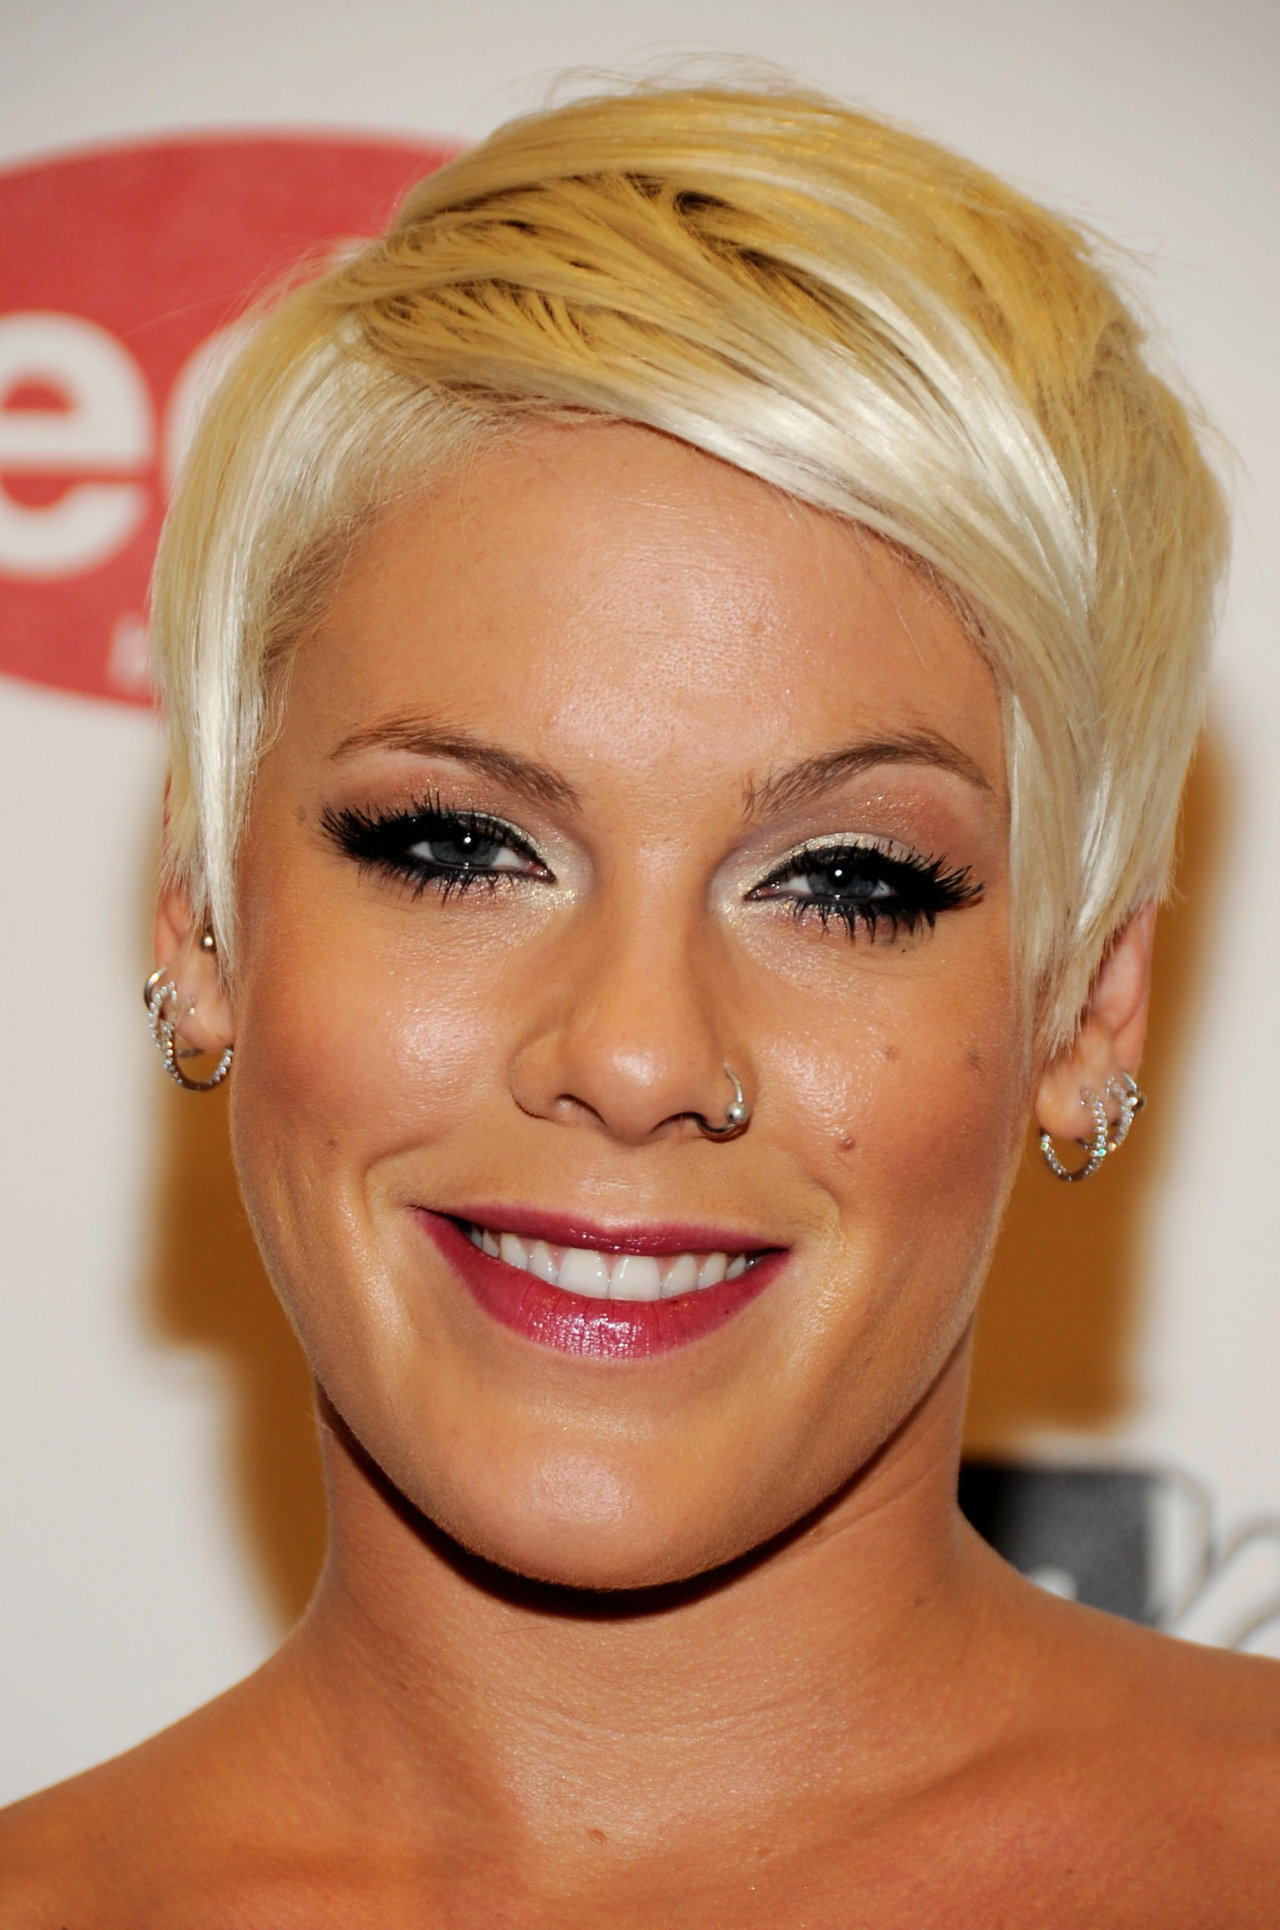 P!nk Fires Back At Haters Over Nude Photo Of Young Son